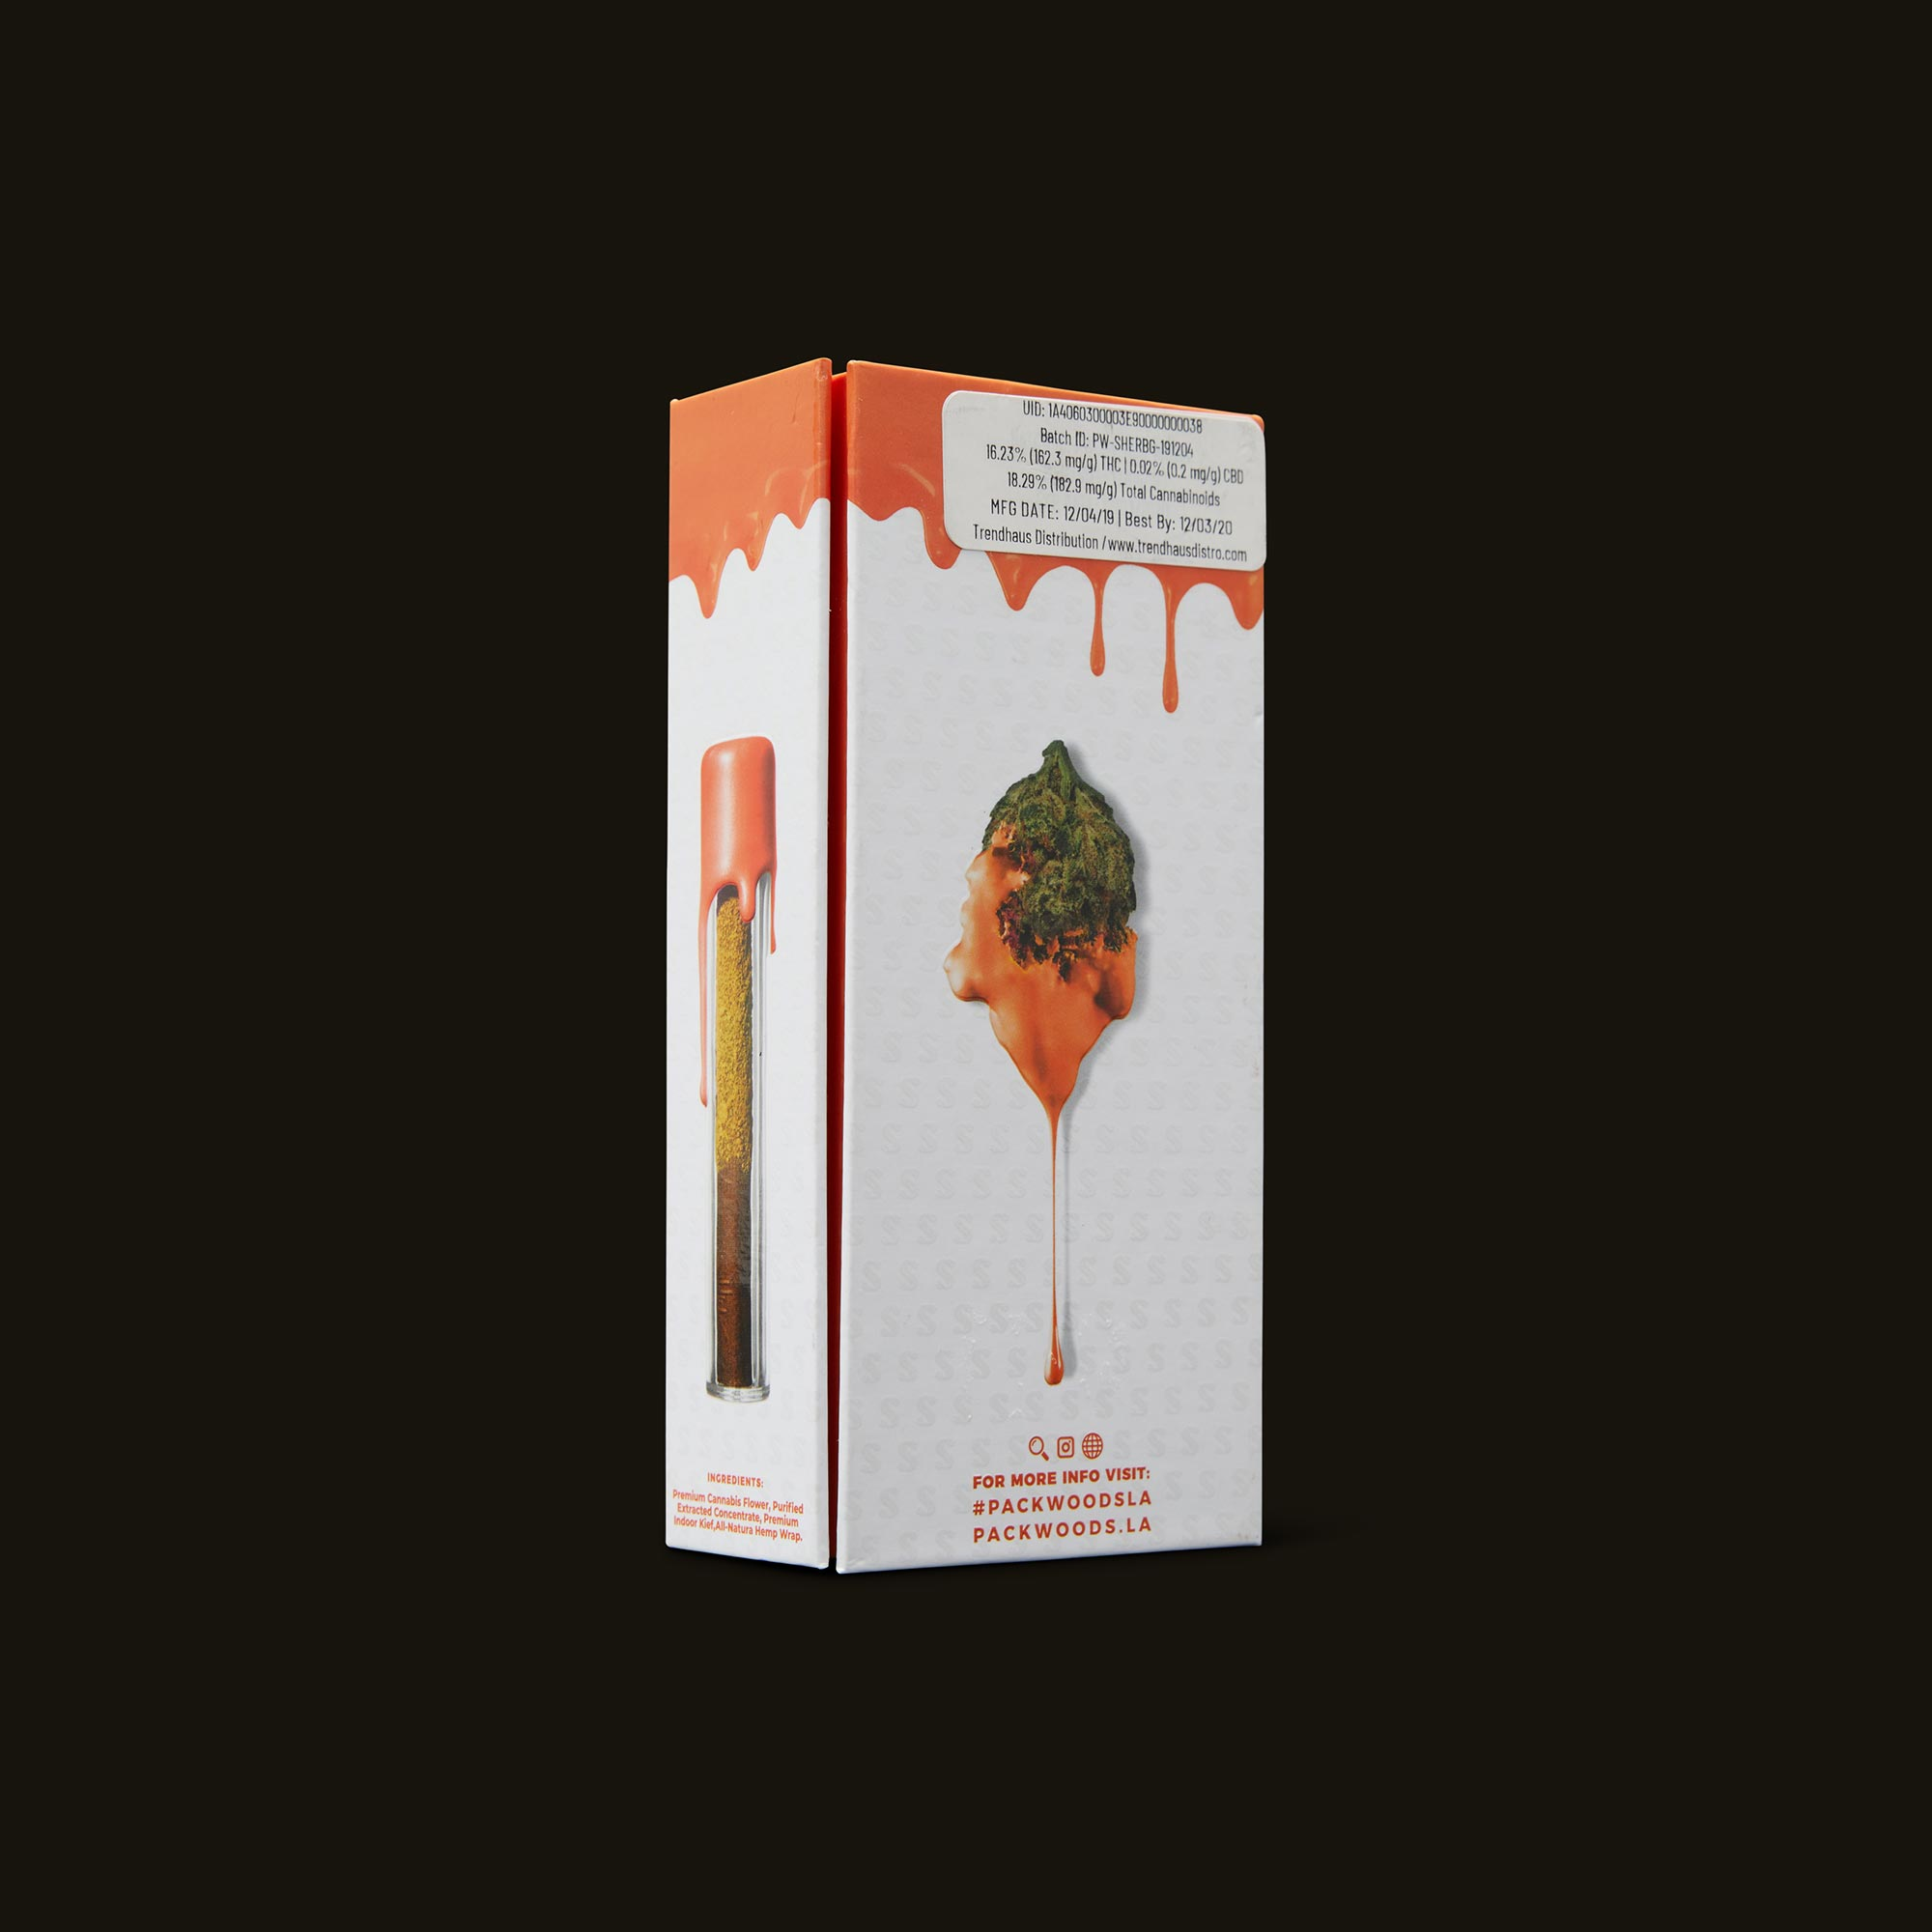 Packwoods Sherbinskis x Packwoods Bacio Gelato Blunt Back Packaging